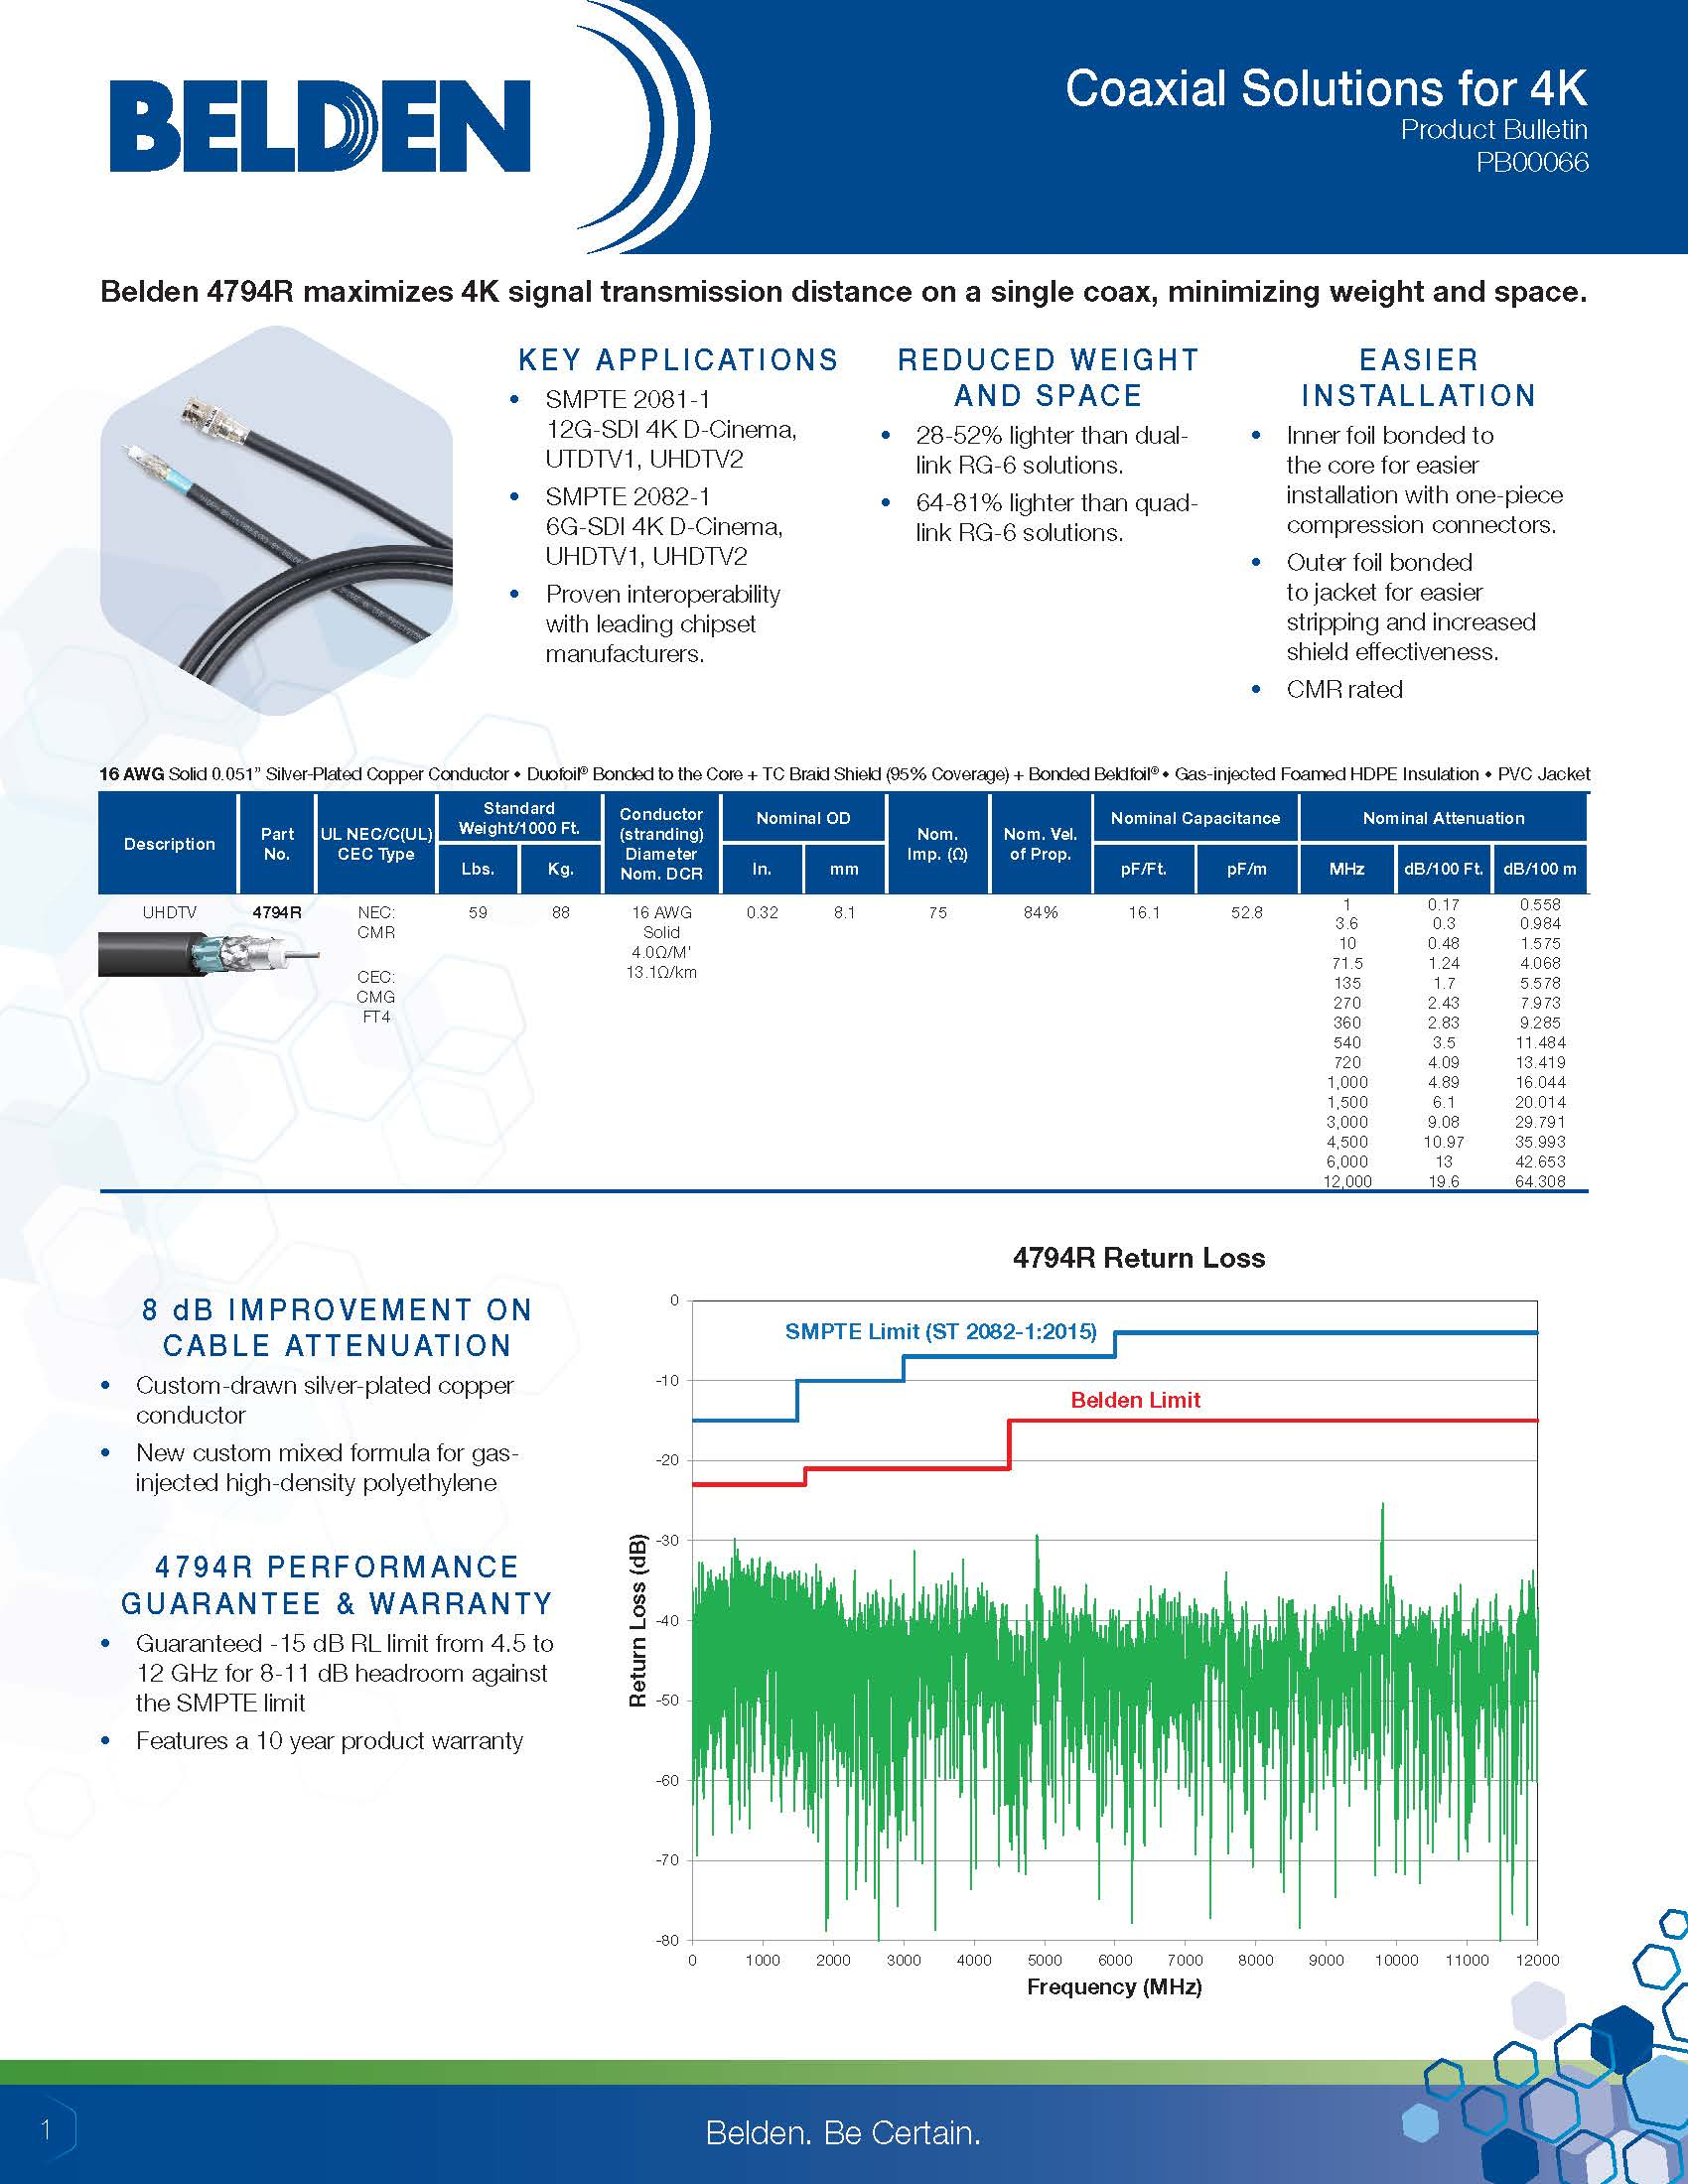 Coaxial_Solutions_for_4K_PB00066_BAV_BDC_0716_A_AG_Page_1.jpg